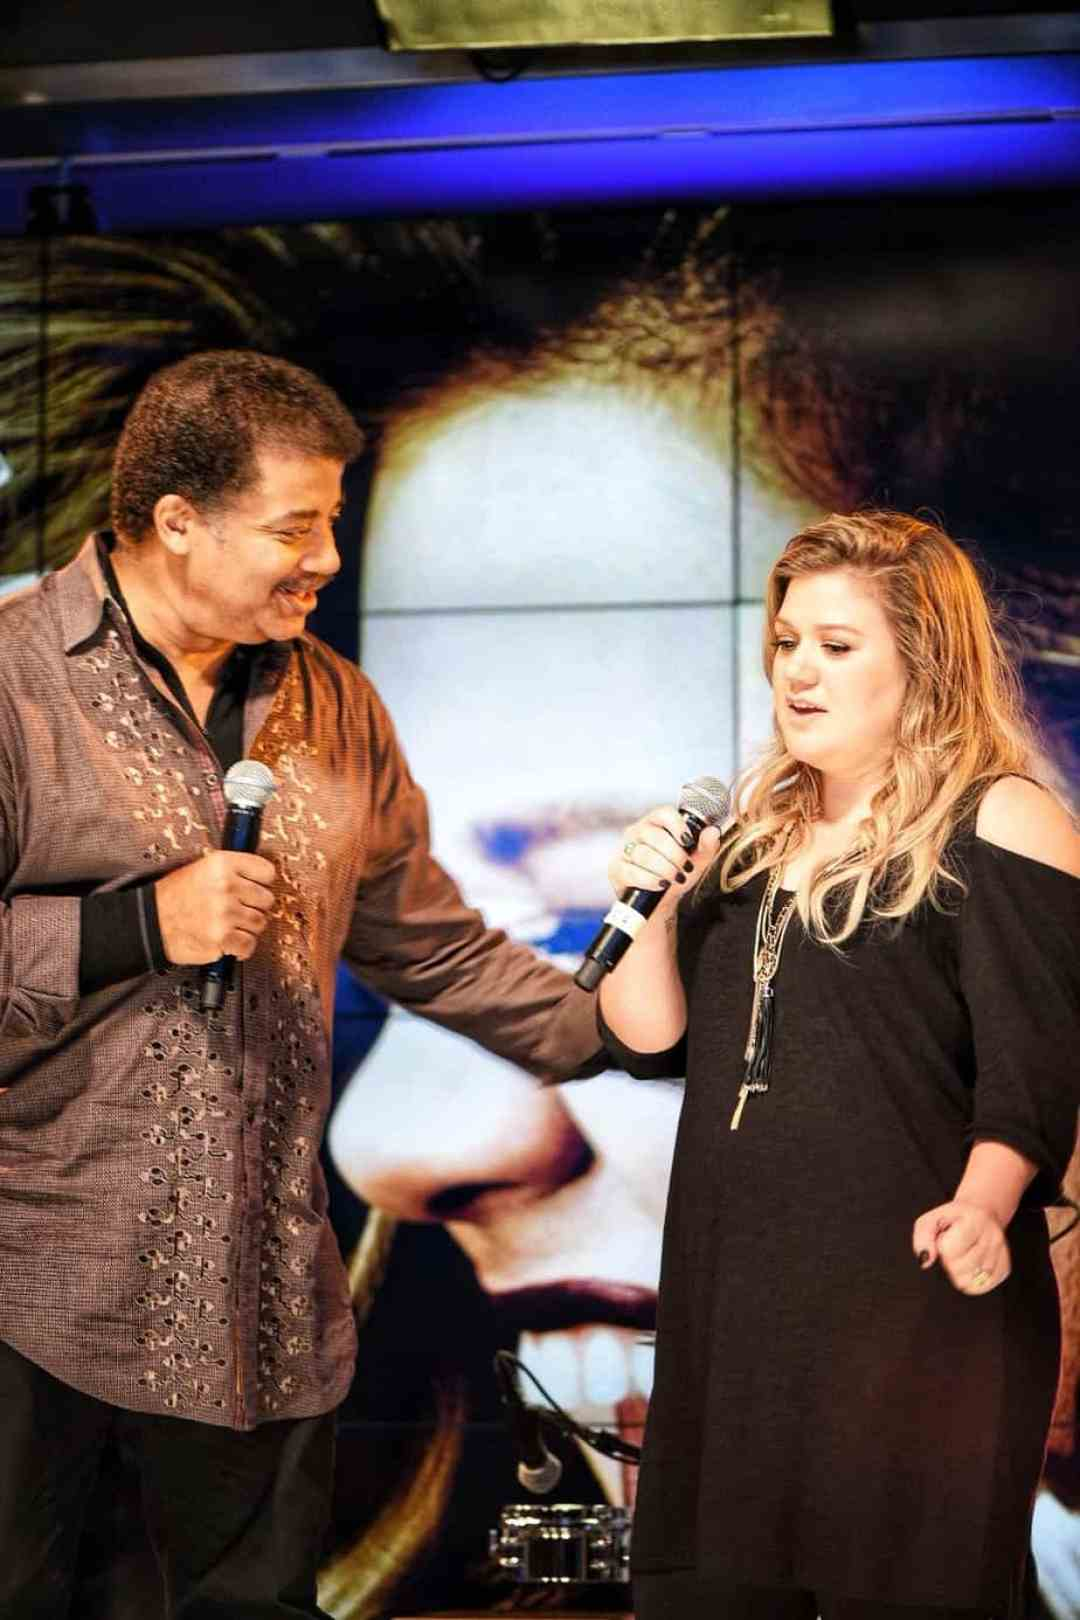 Neil deGrasse Tyson and Kelly Clarkson discuss her new album, the Meaning of Life